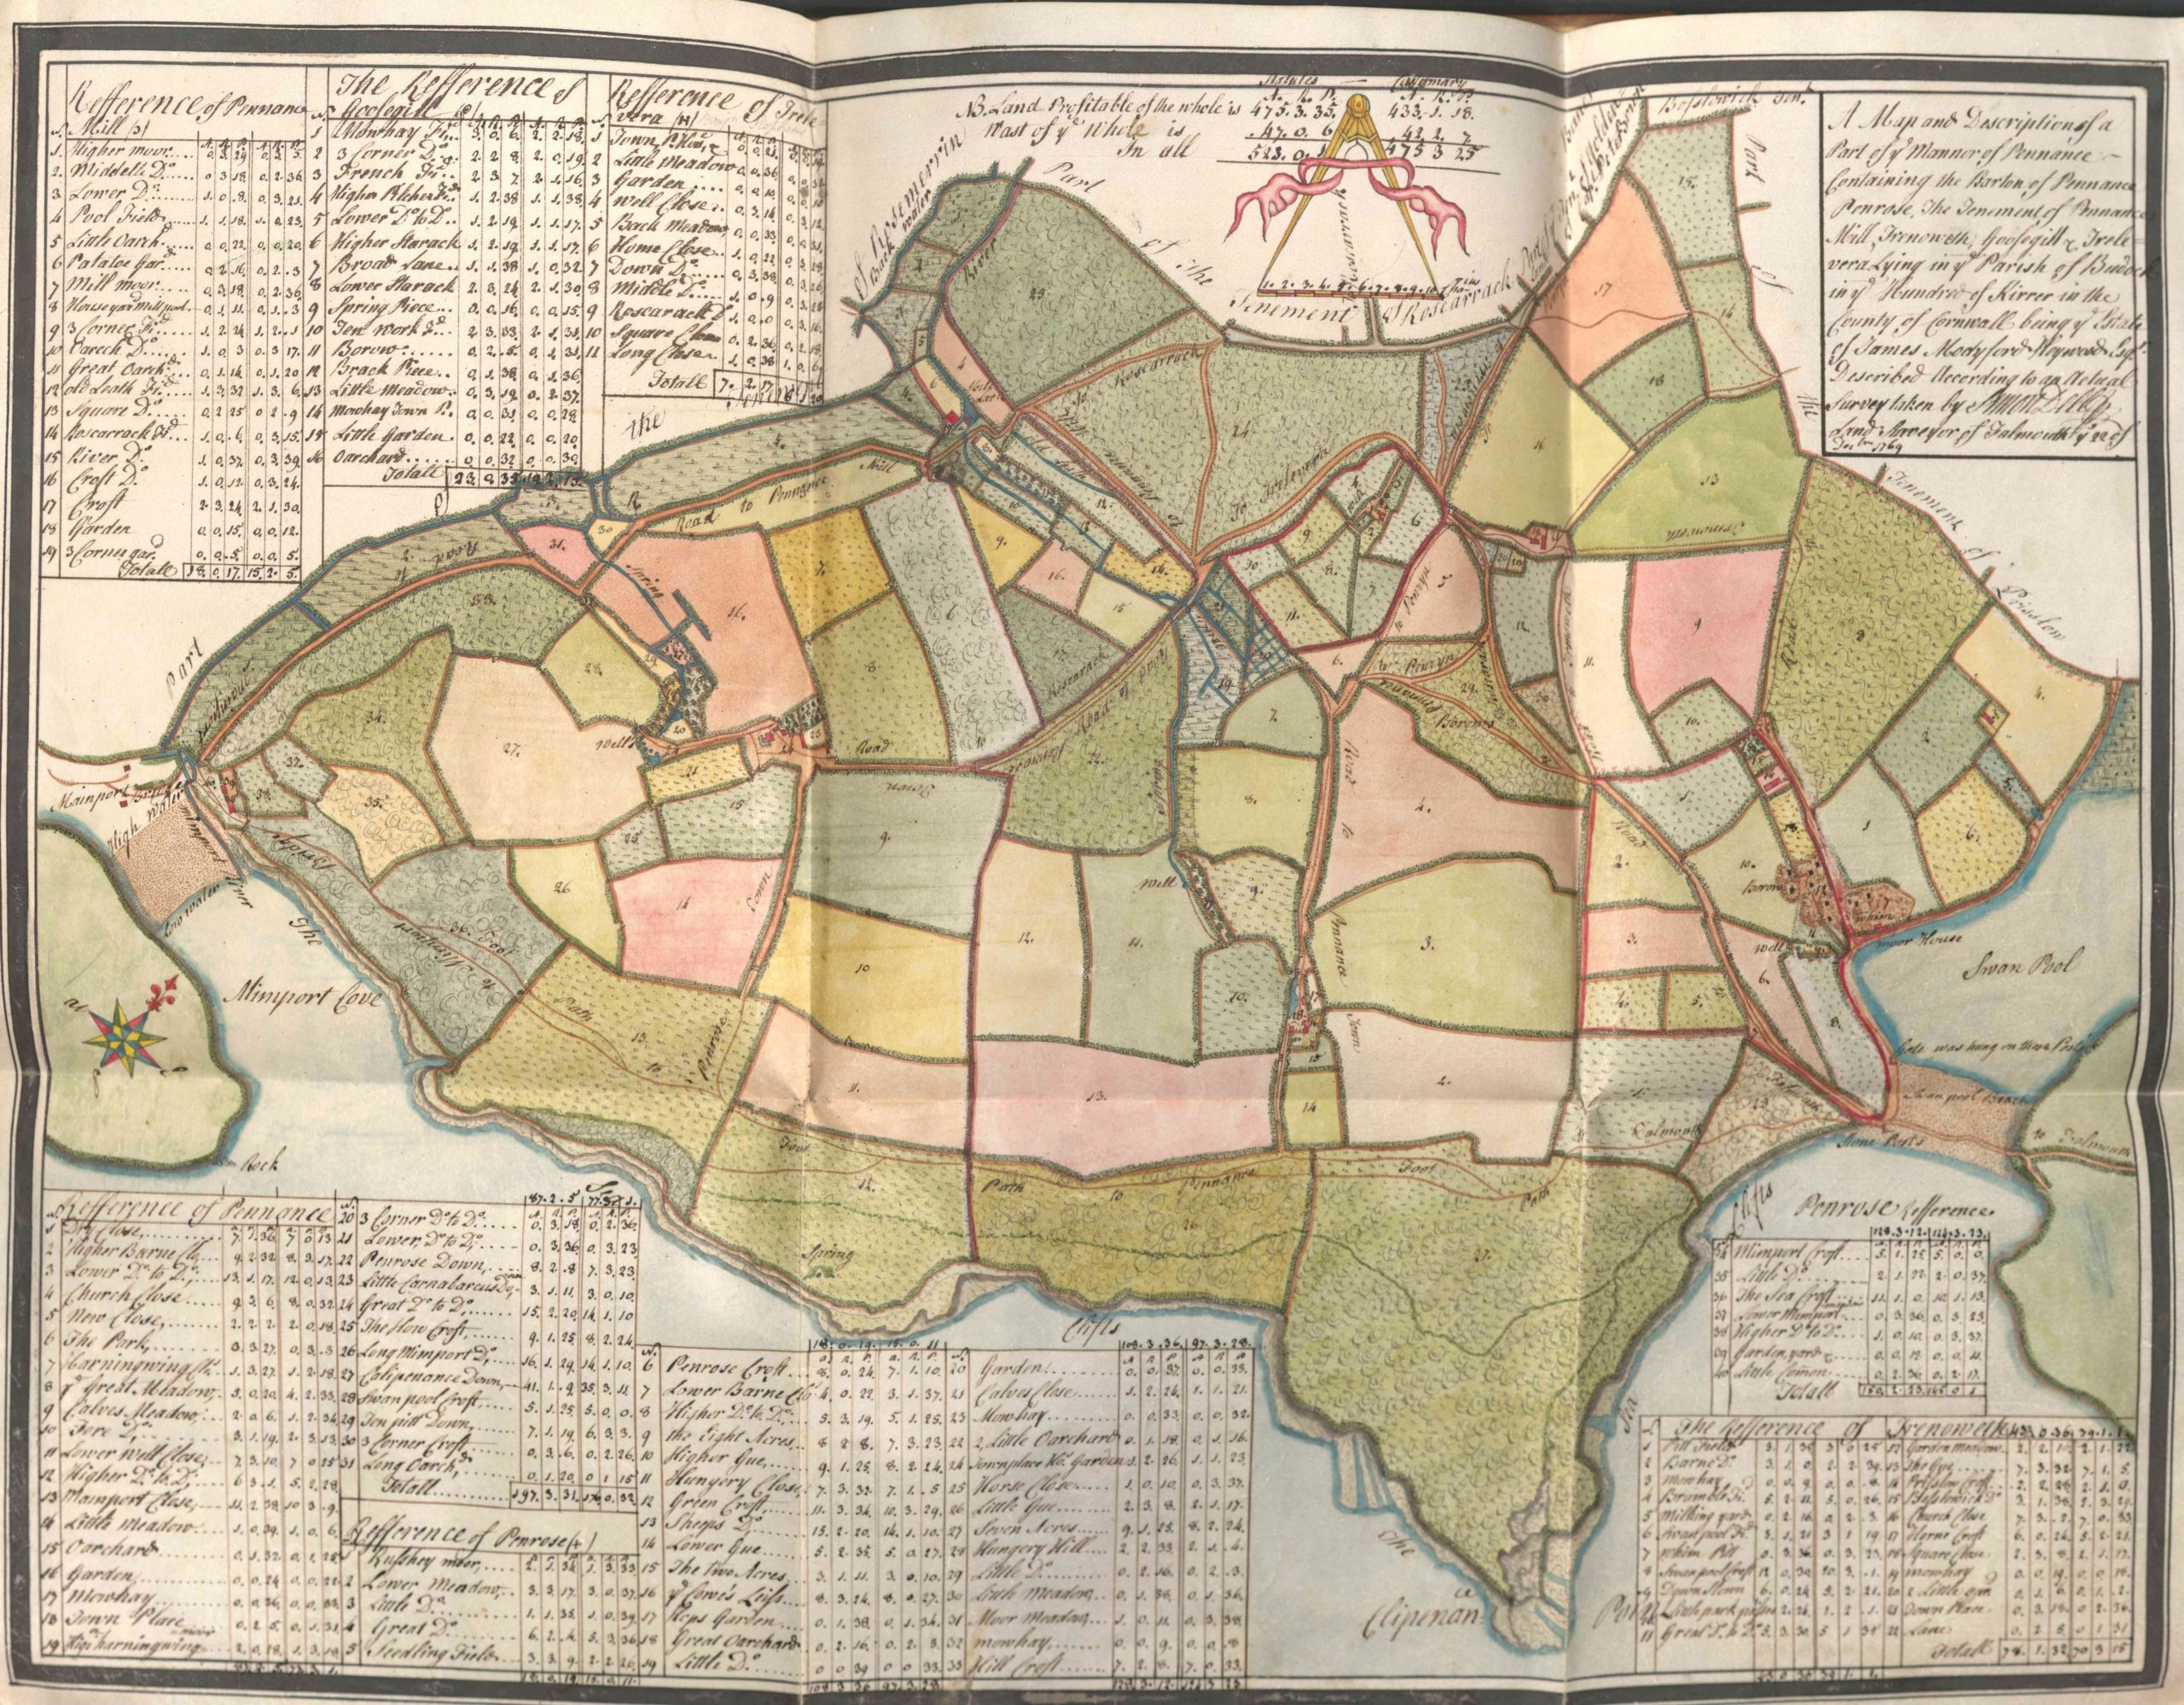 Image of a brightly coloured hand drawn estate map.